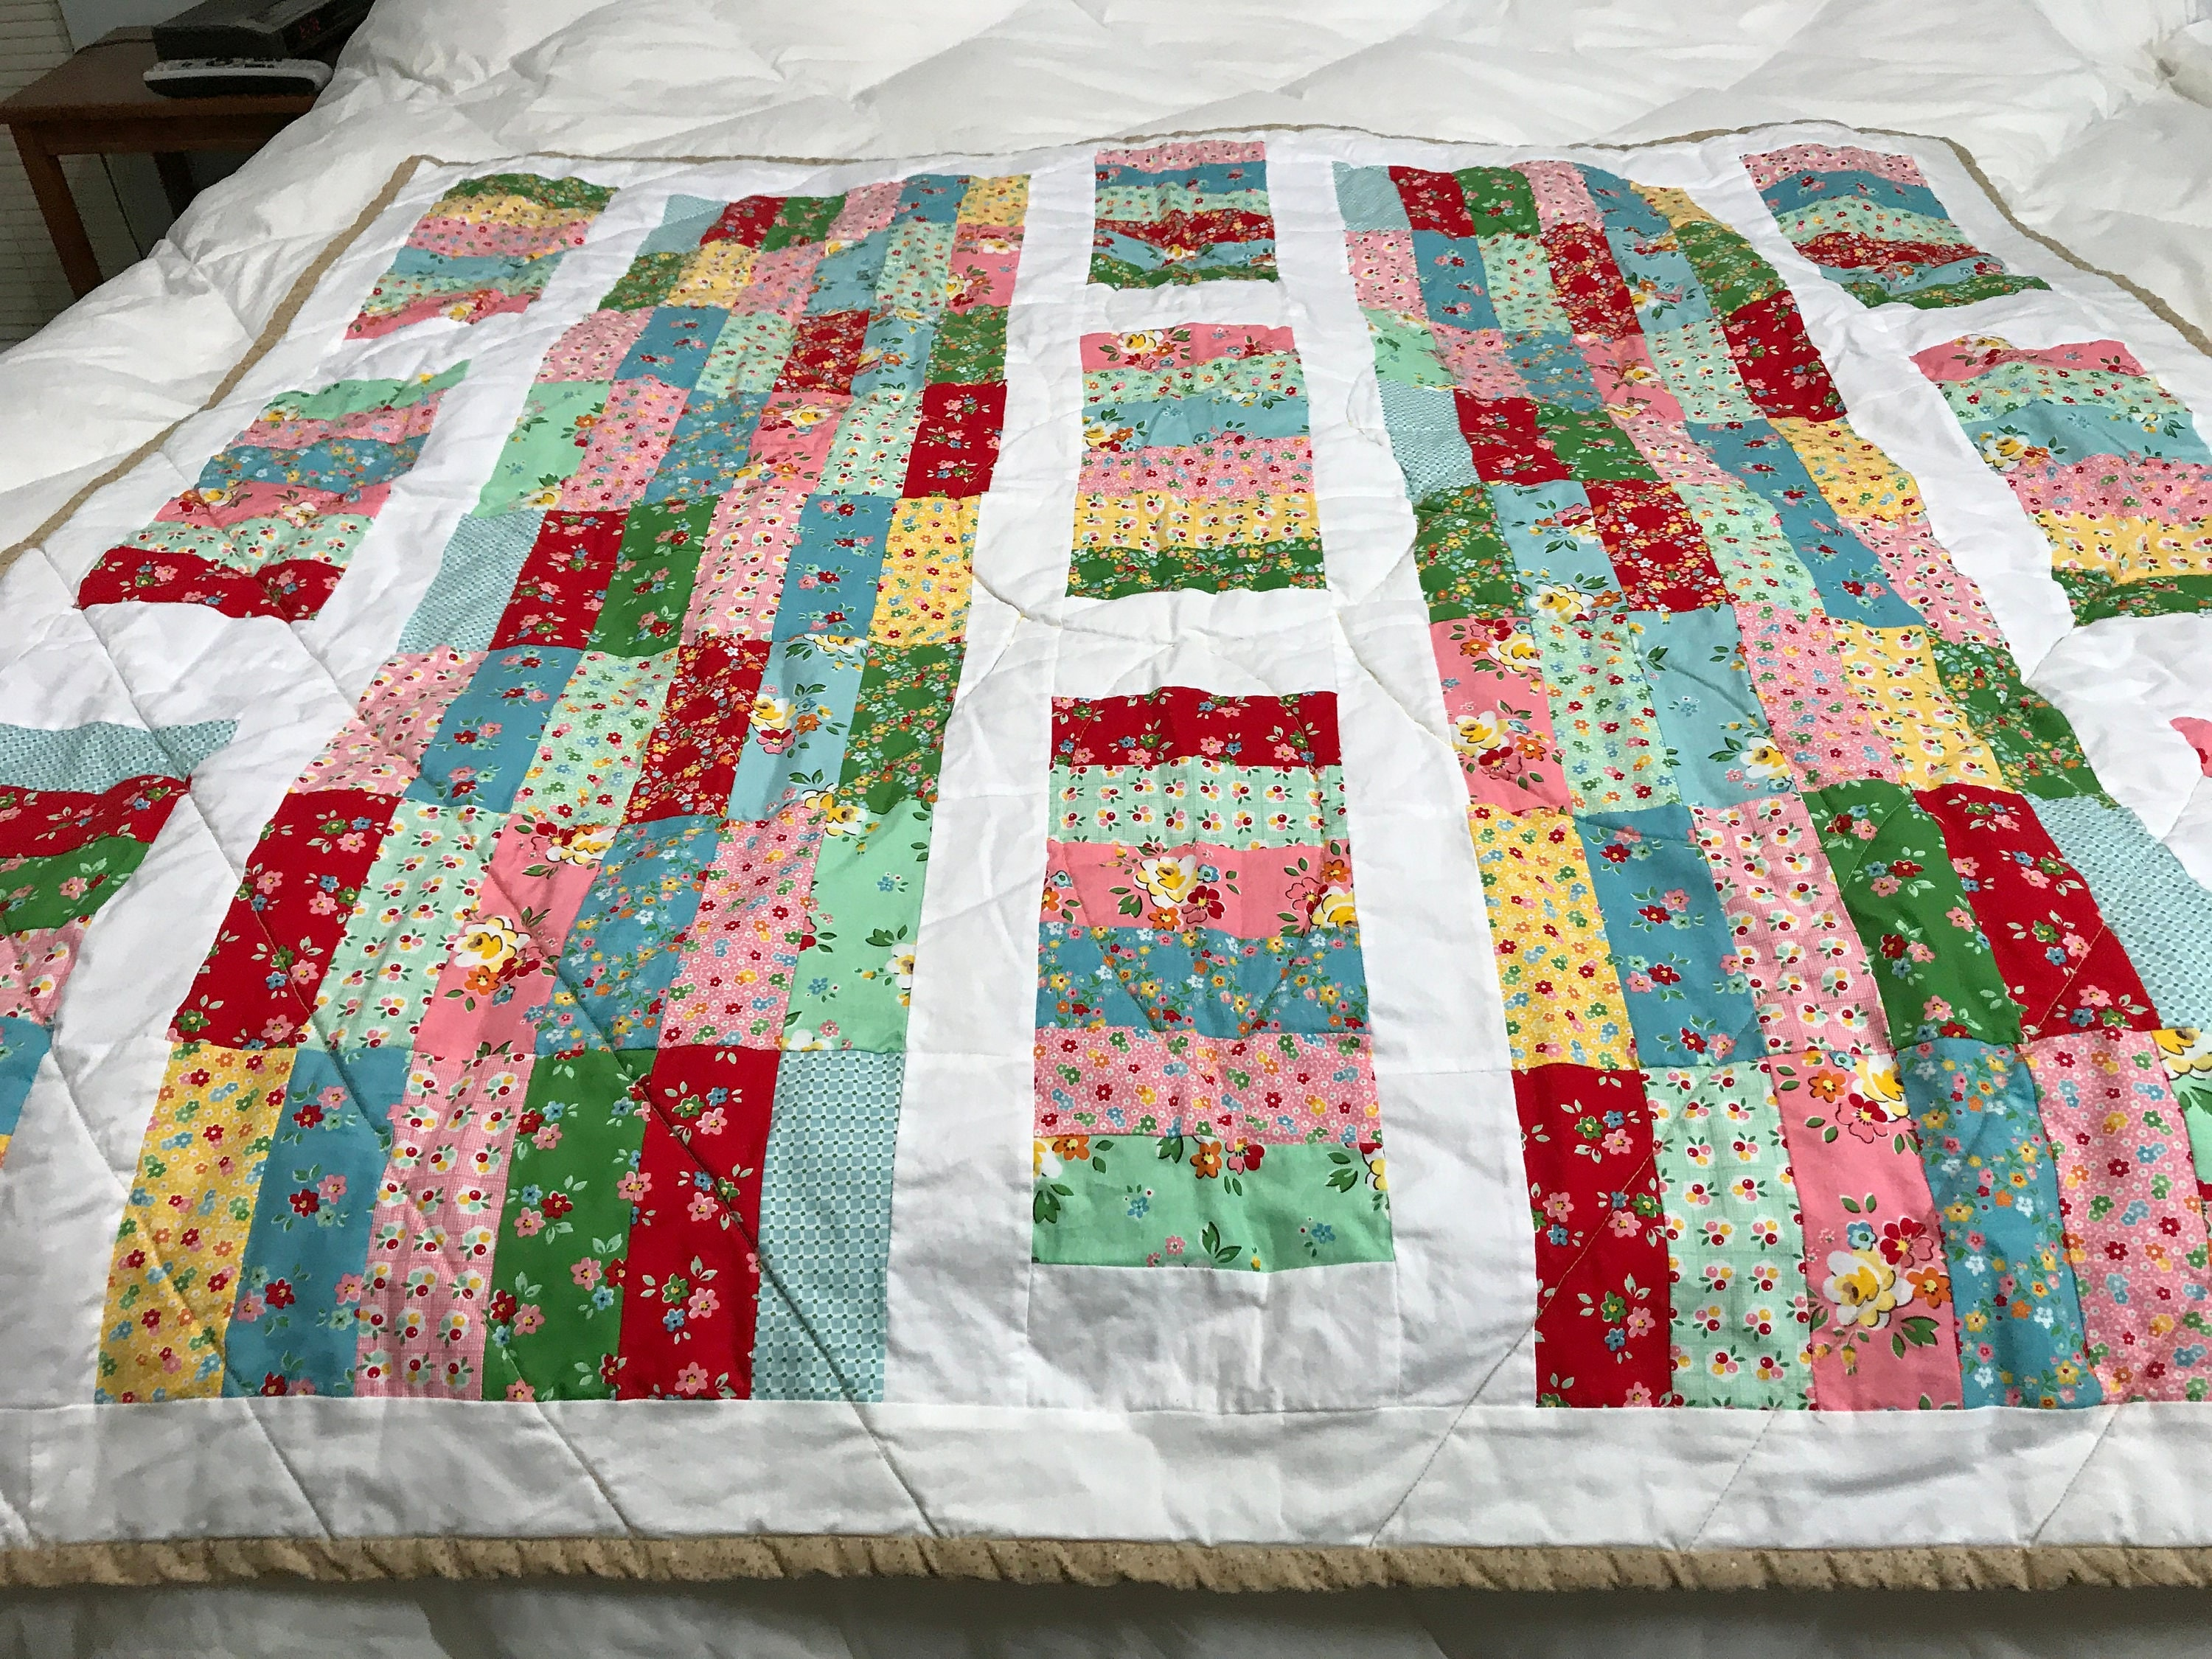 Quilted Lap Blanket, Quilted Blanket, Lap Blanket, Floral Quilt ... : quilted lap throws - Adamdwight.com